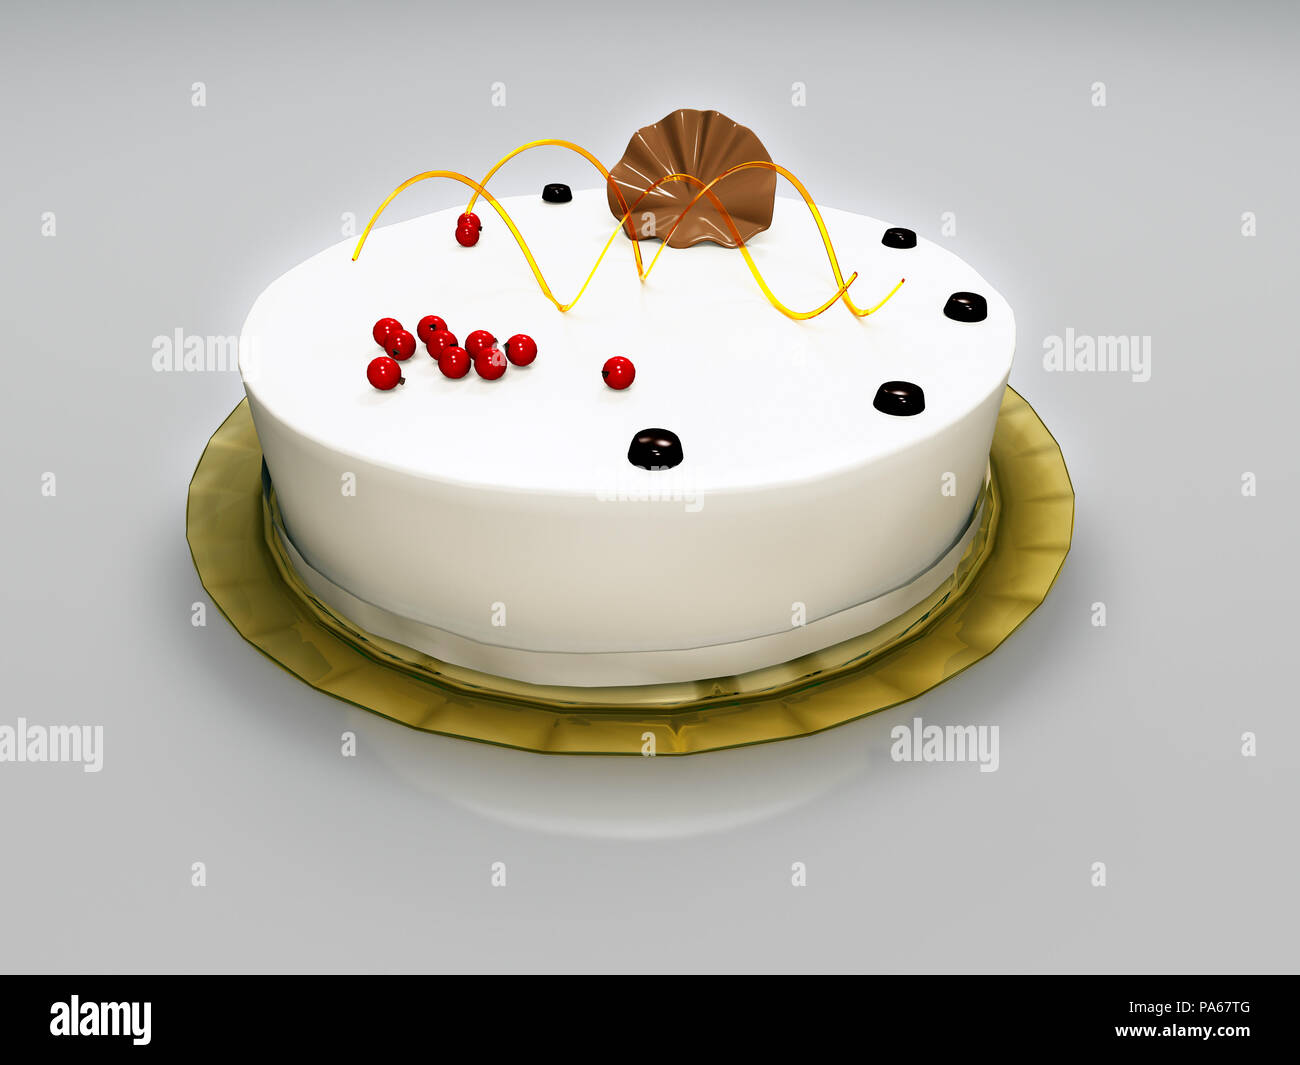 An Illustration Of A Delicious Birthday Cake